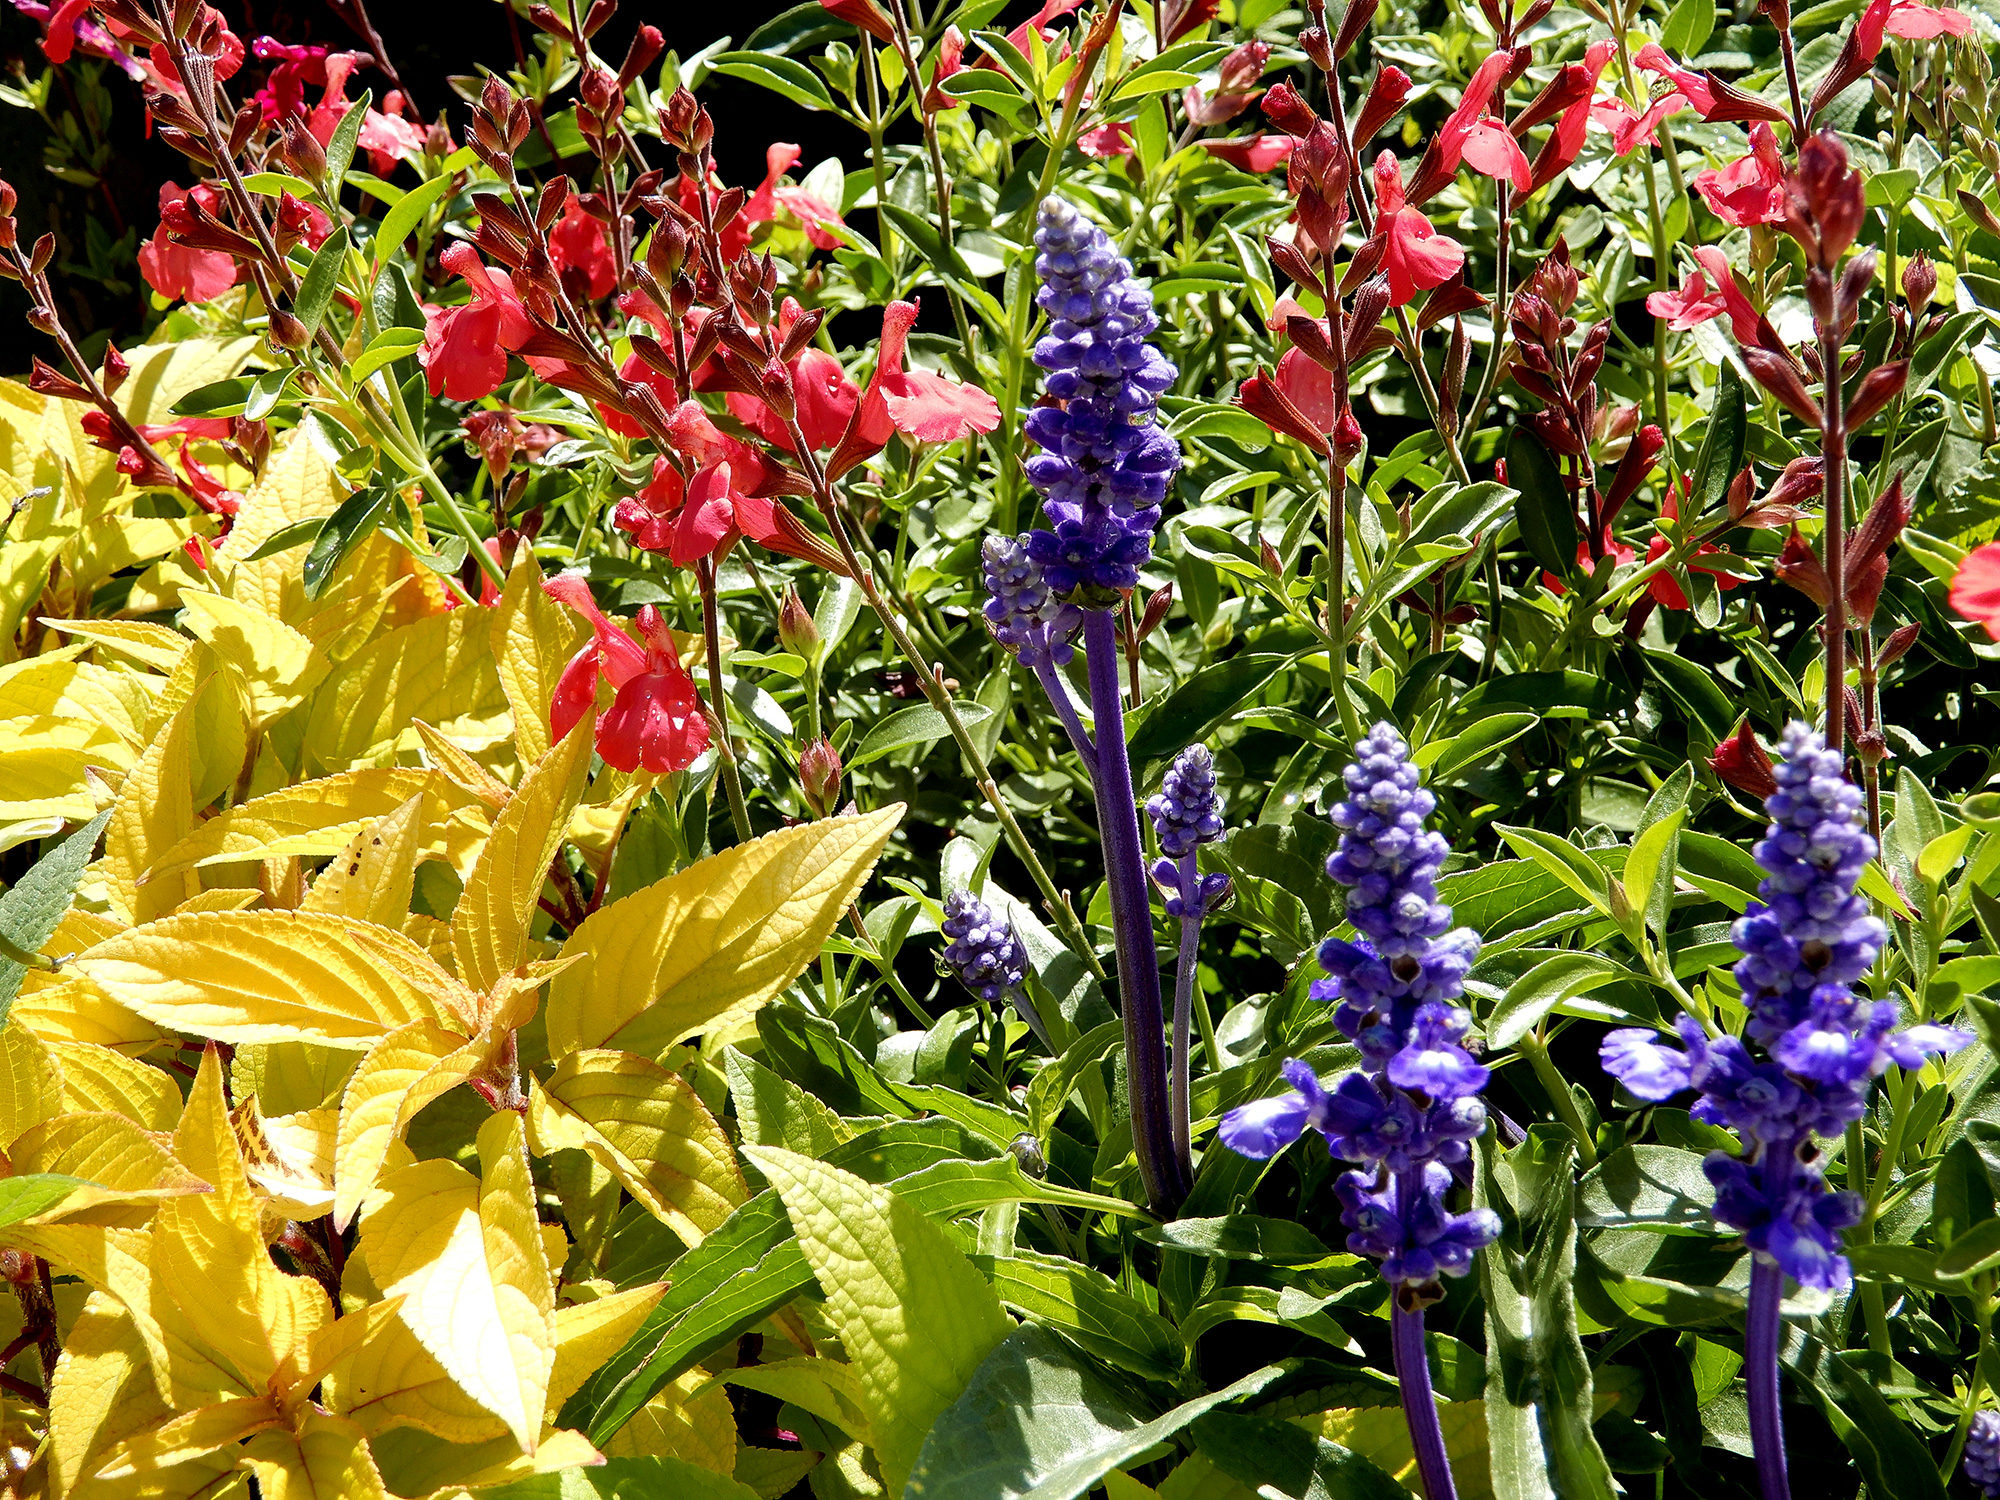 mixed salvias - Photo by Helen Krayenhoff